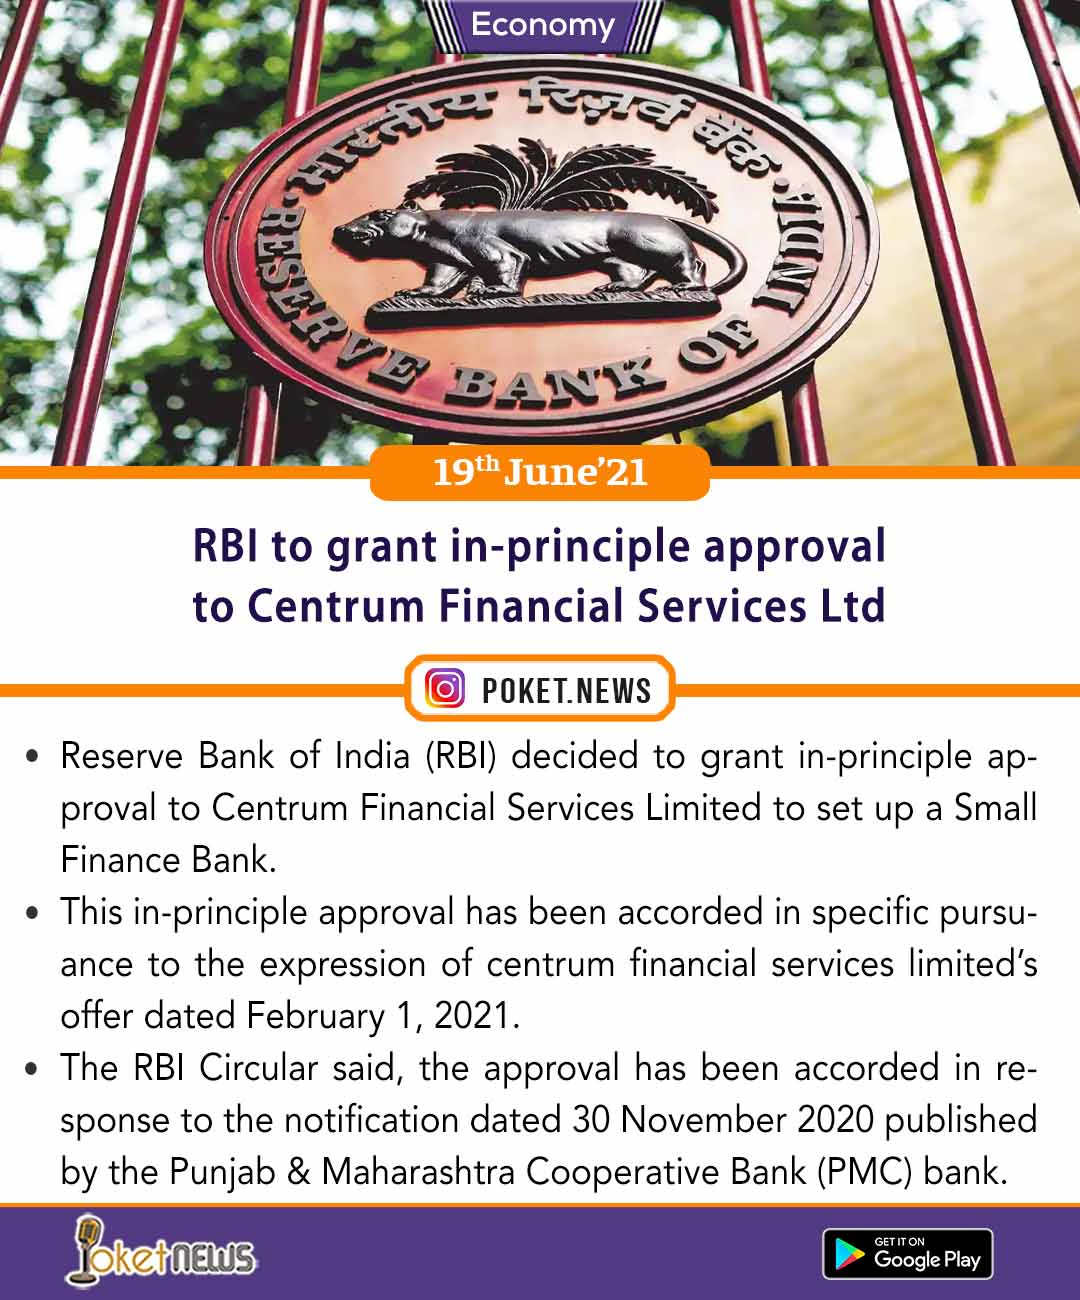 RBI to grant in-principle approval to Centrum Financial Services Ltd